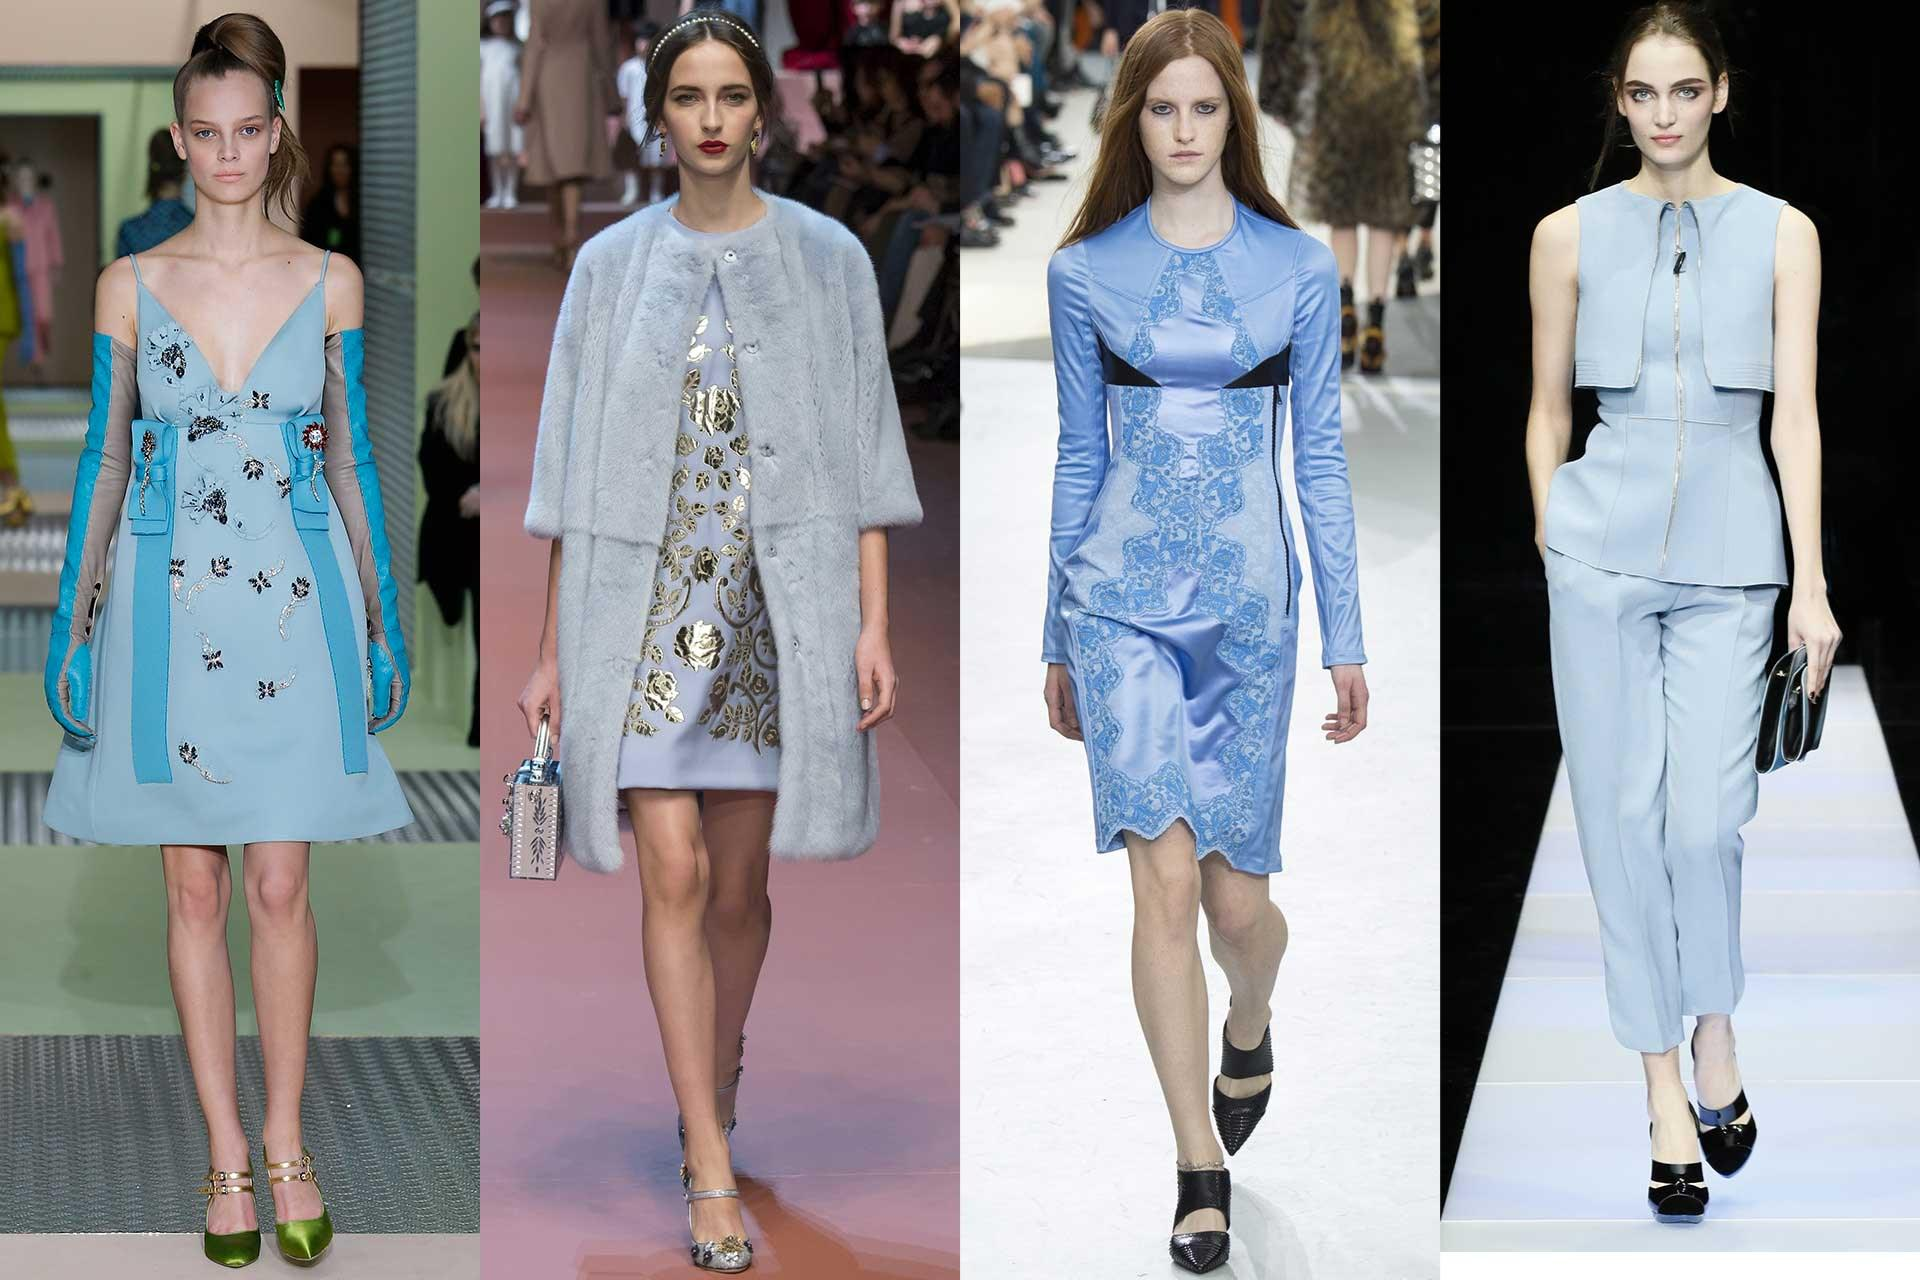 Cinderella blue! It's about time you wore it head-to-toe… http://t.co/vS04pJuo1D http://t.co/z9Cwo5qeHo